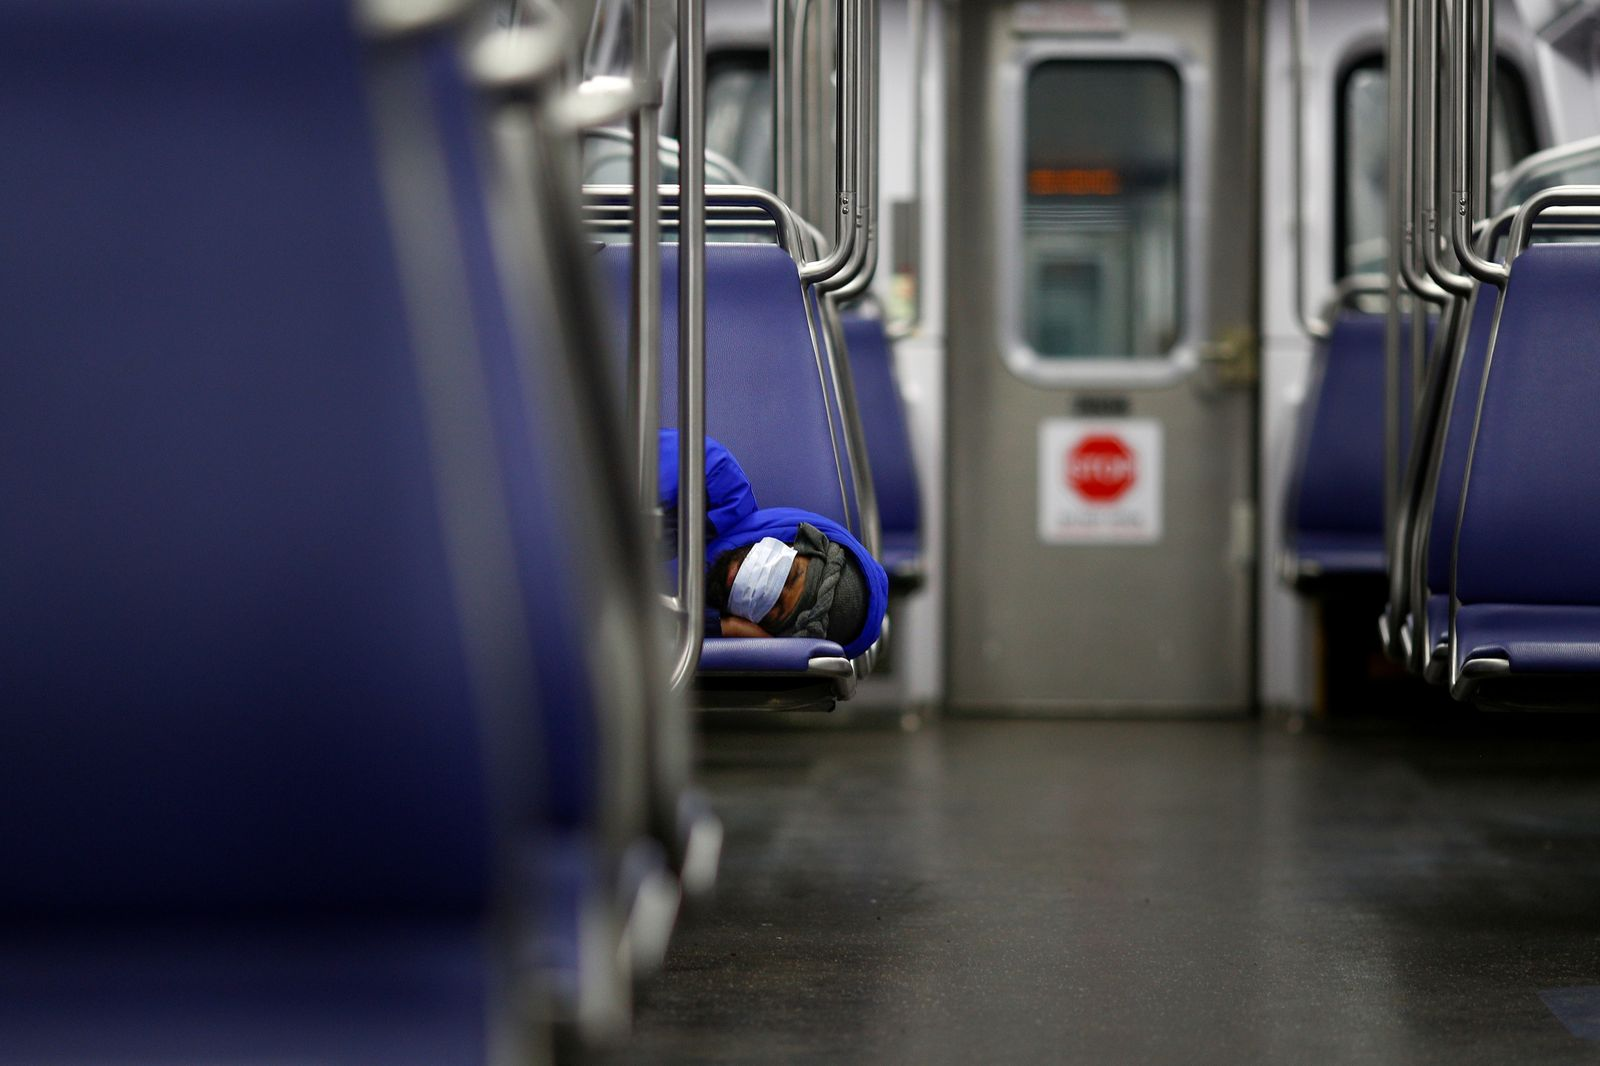 A person rests on a Washington Metro subway car wearing a face mask, following Mayor Muriel Bowser's declaration of a state of emergency due to the coronavirus disease (COVID-19) in Washington